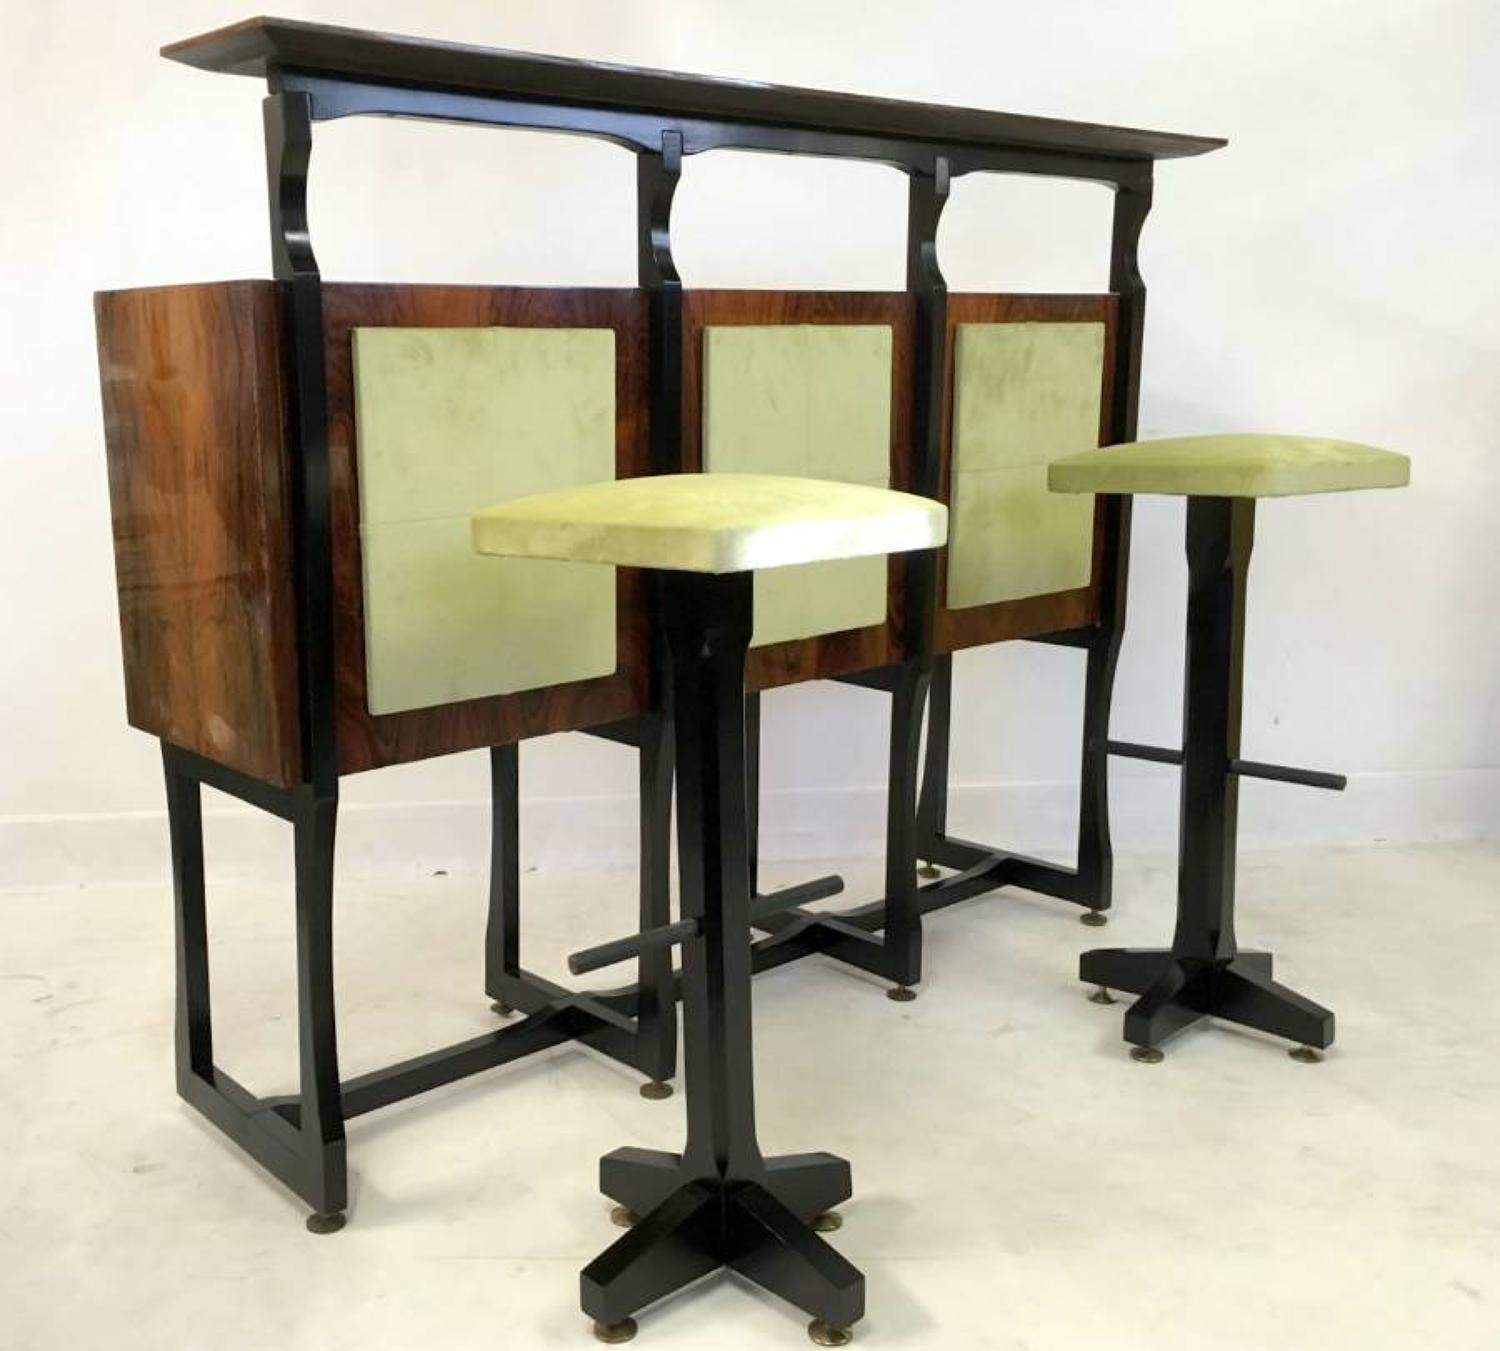 1960s Italian rosewood bar with two stools